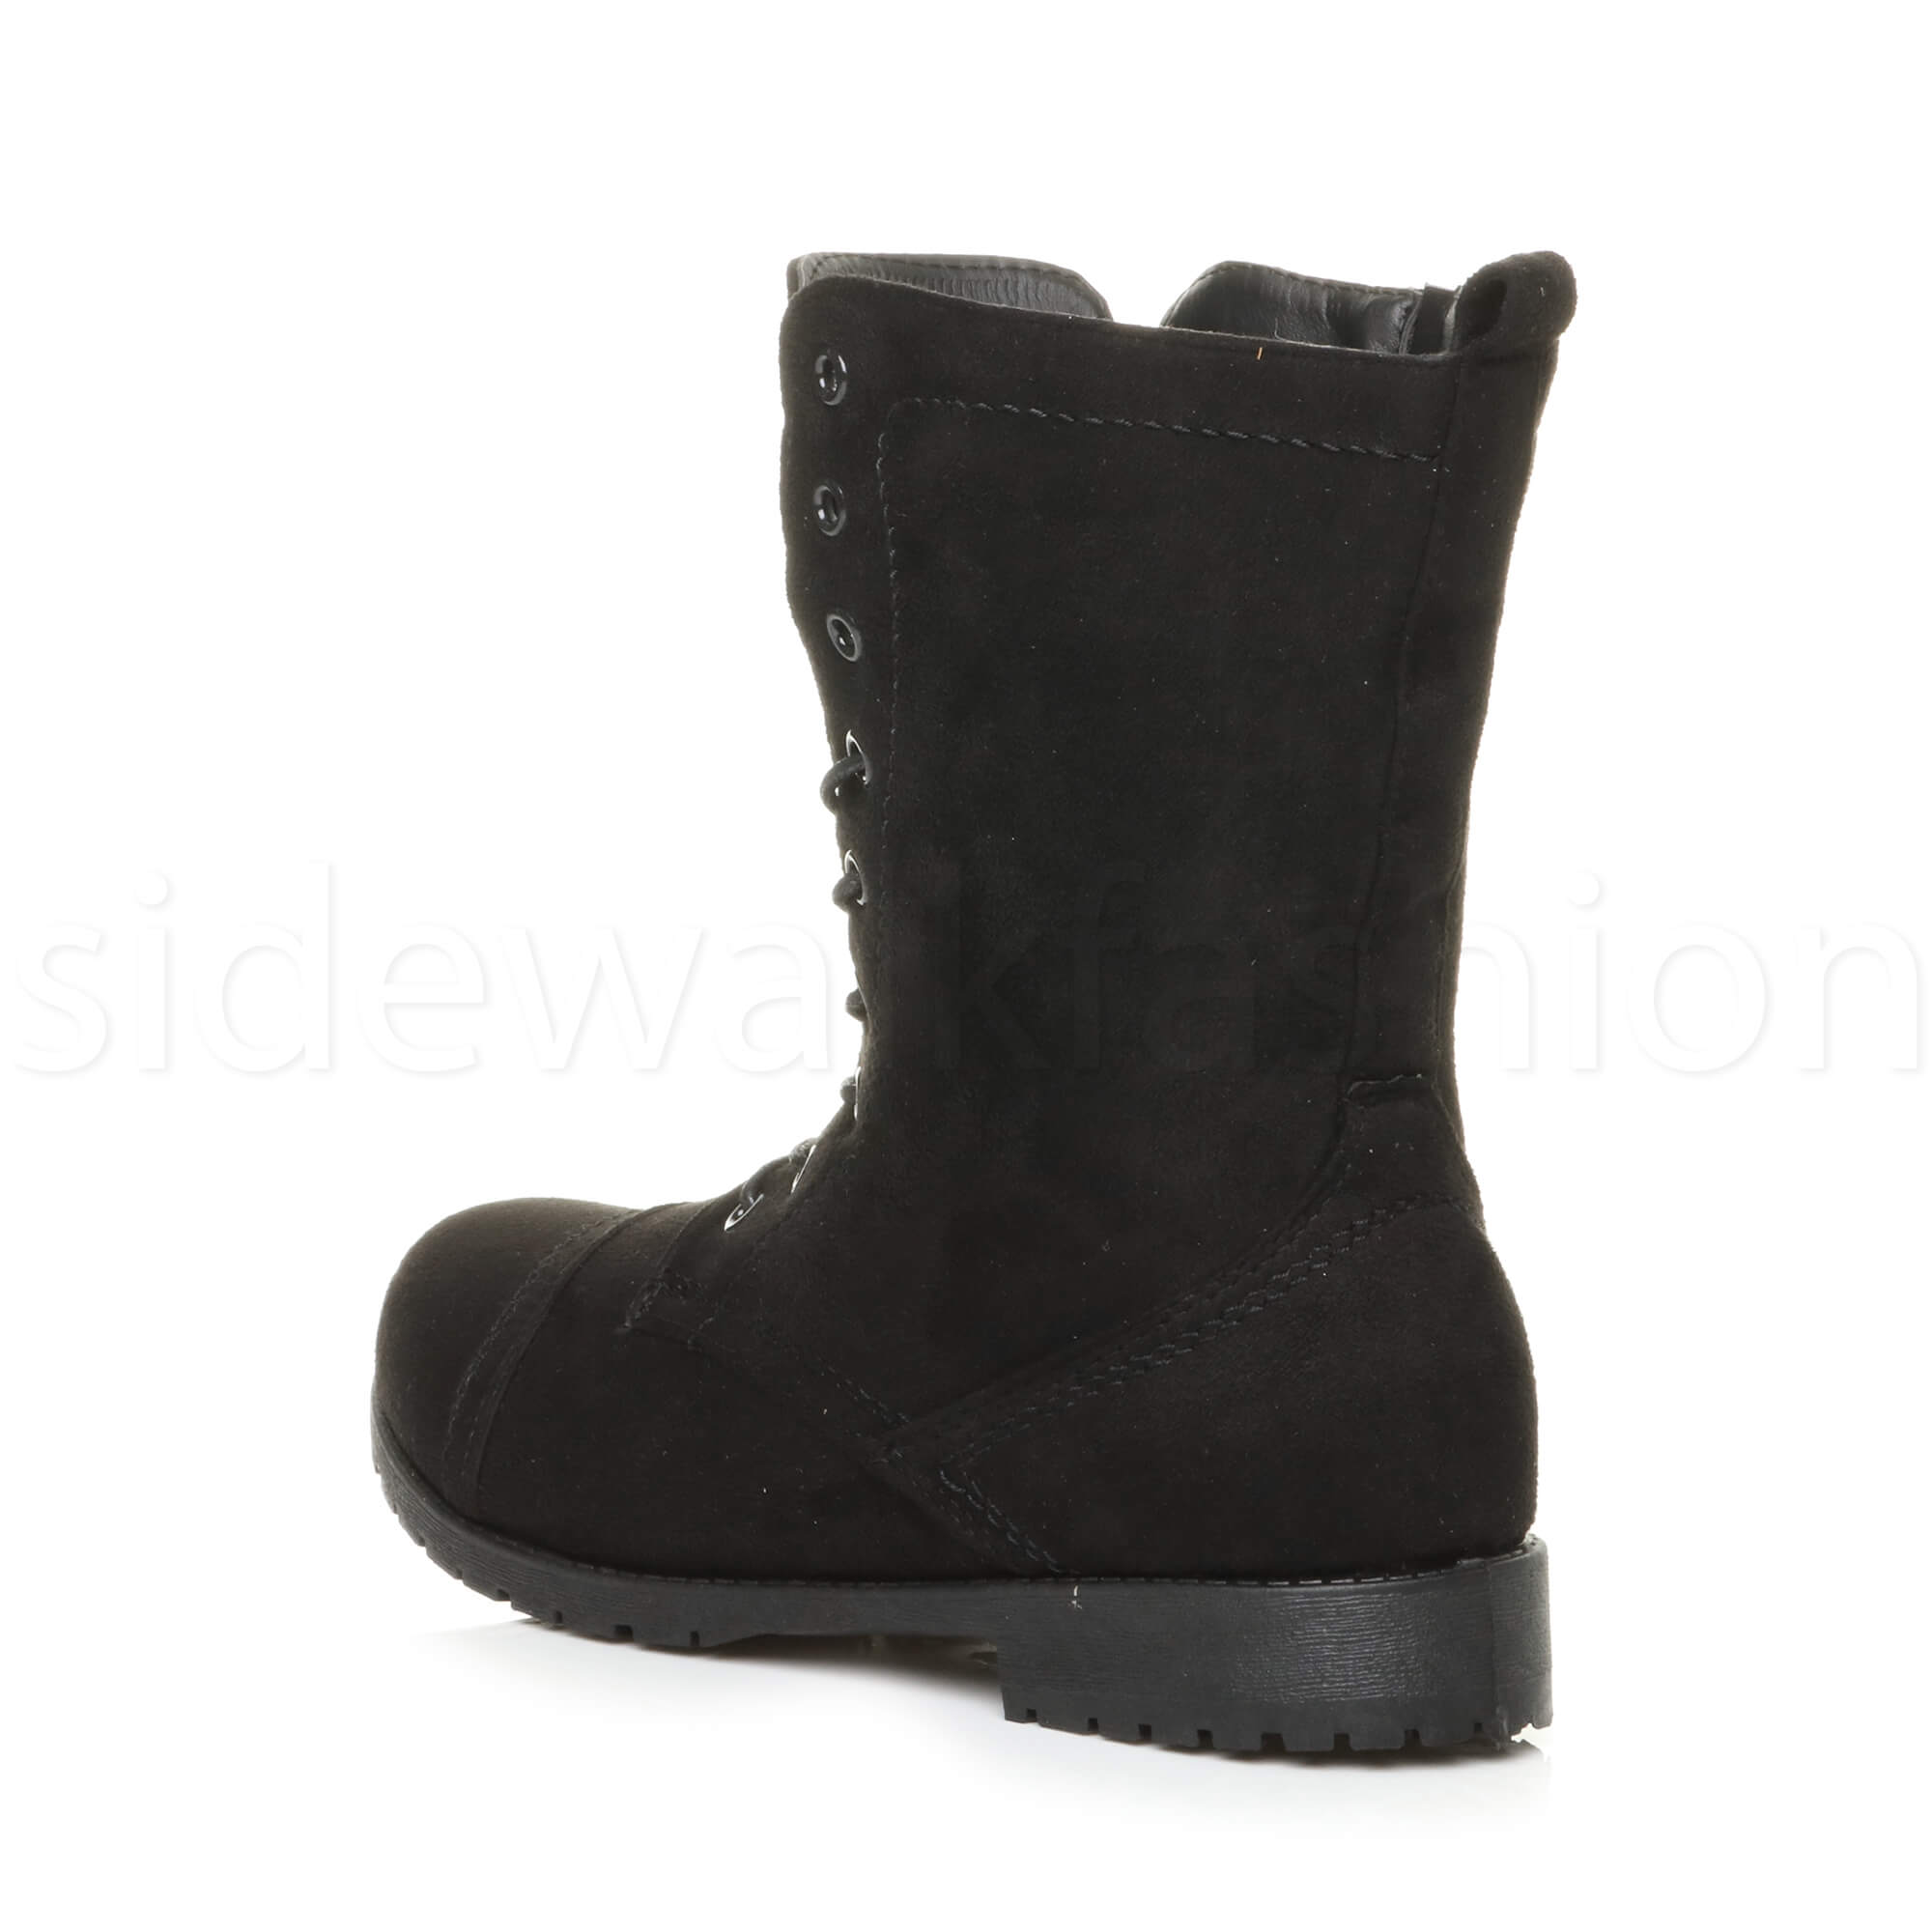 Womens-ladies-low-heel-flat-lace-up-zip-combat-biker-military-ankle-boots-size thumbnail 69